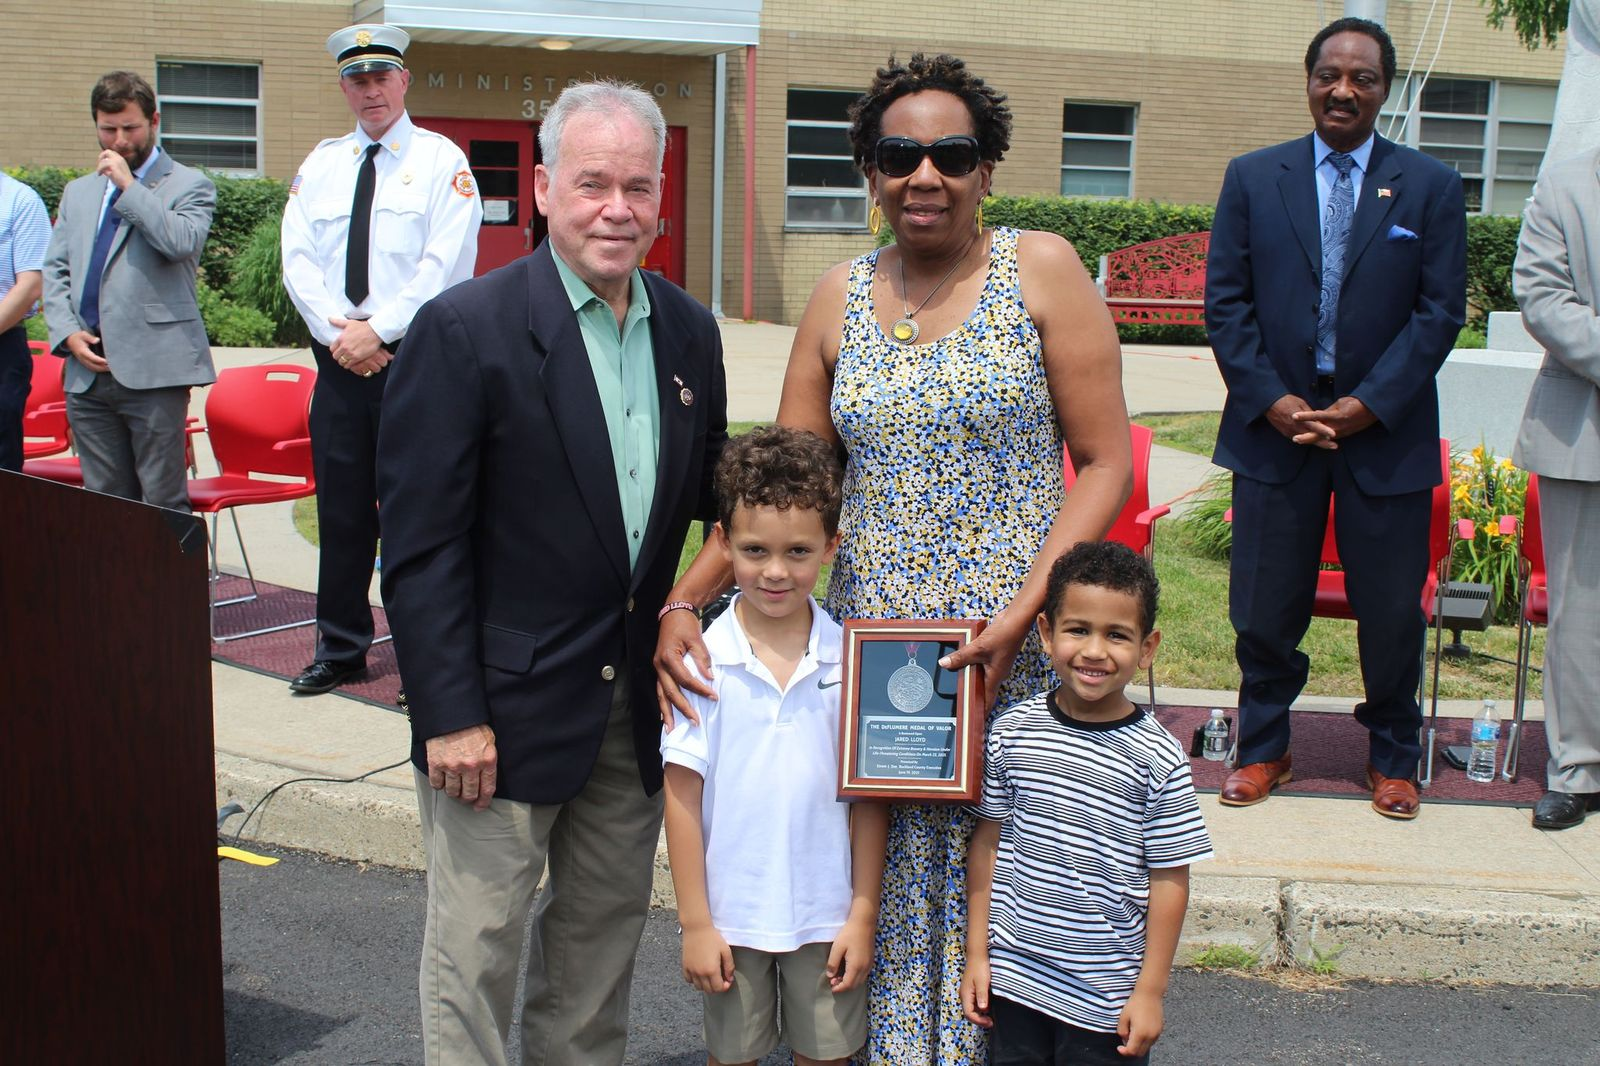 Family of Jared Lloyd Presented With Al DeFlumere Award